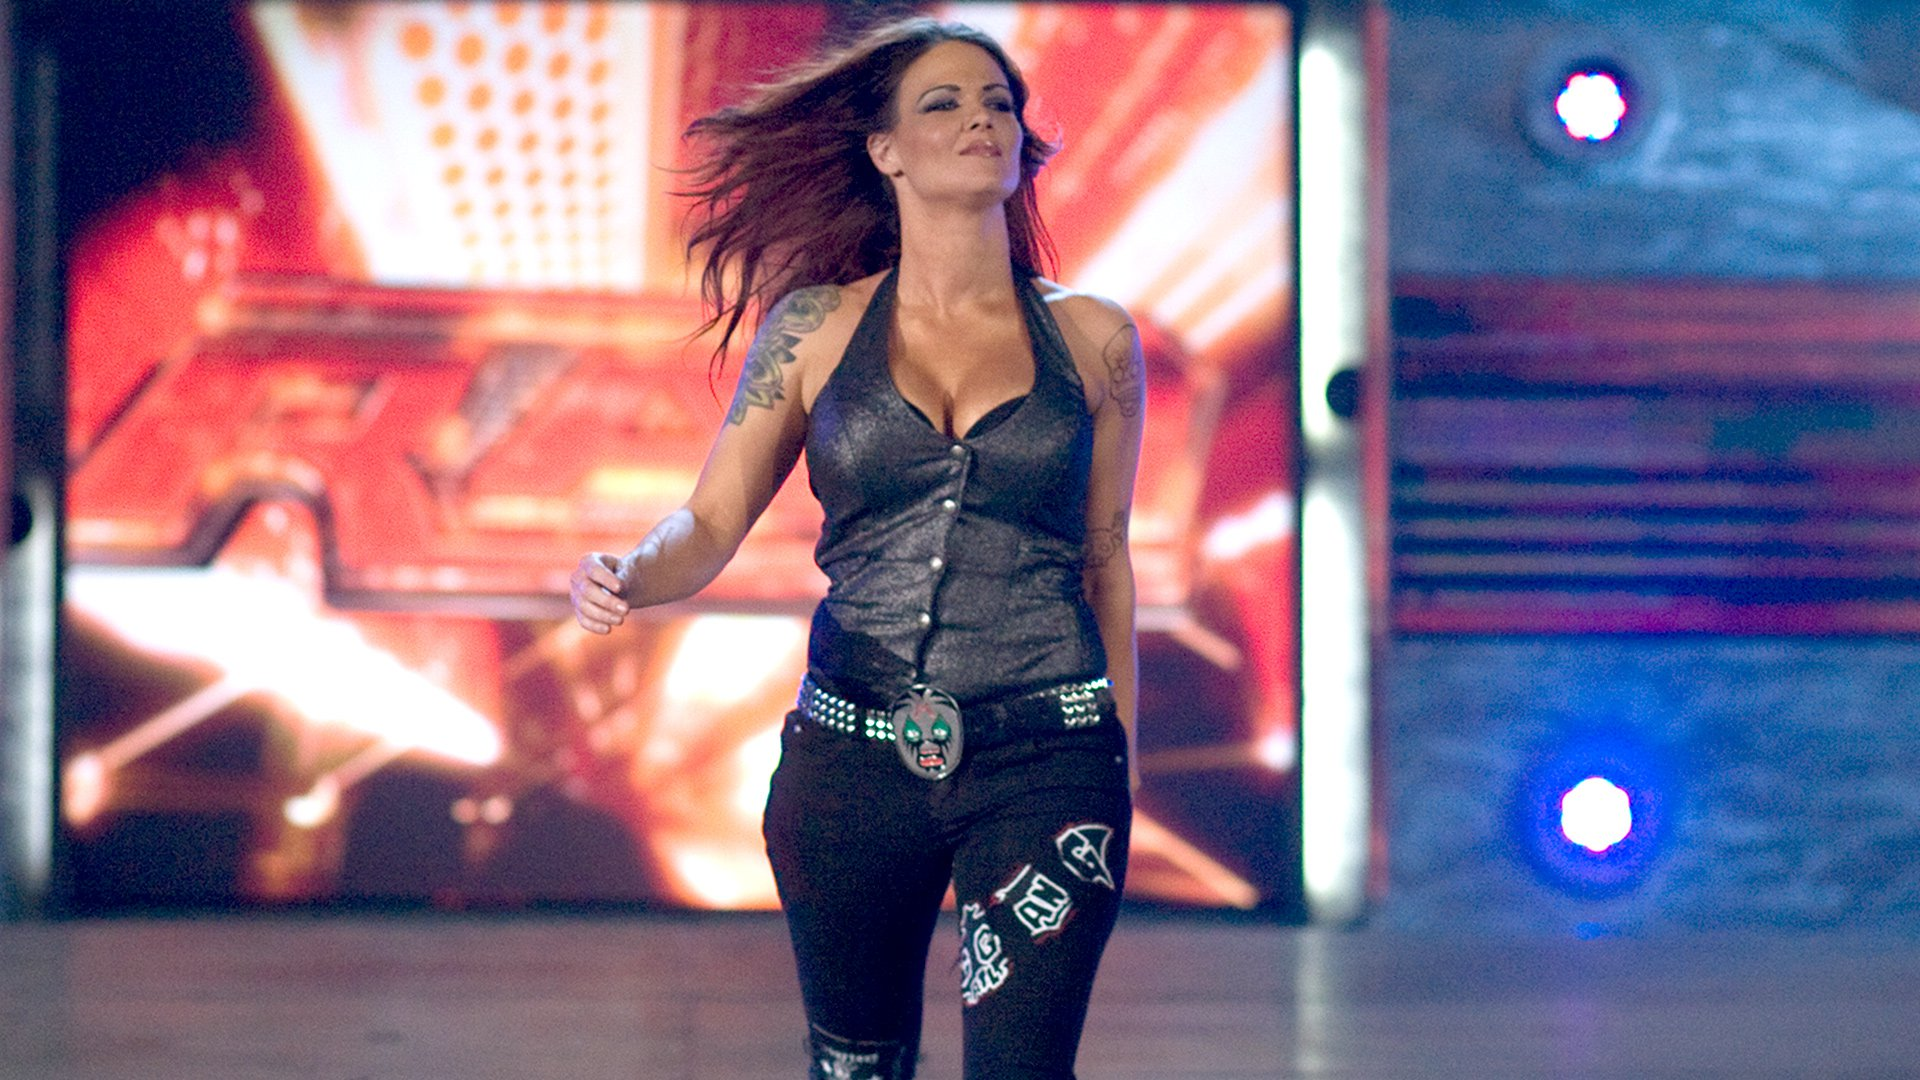 Lita's Twist of Fate